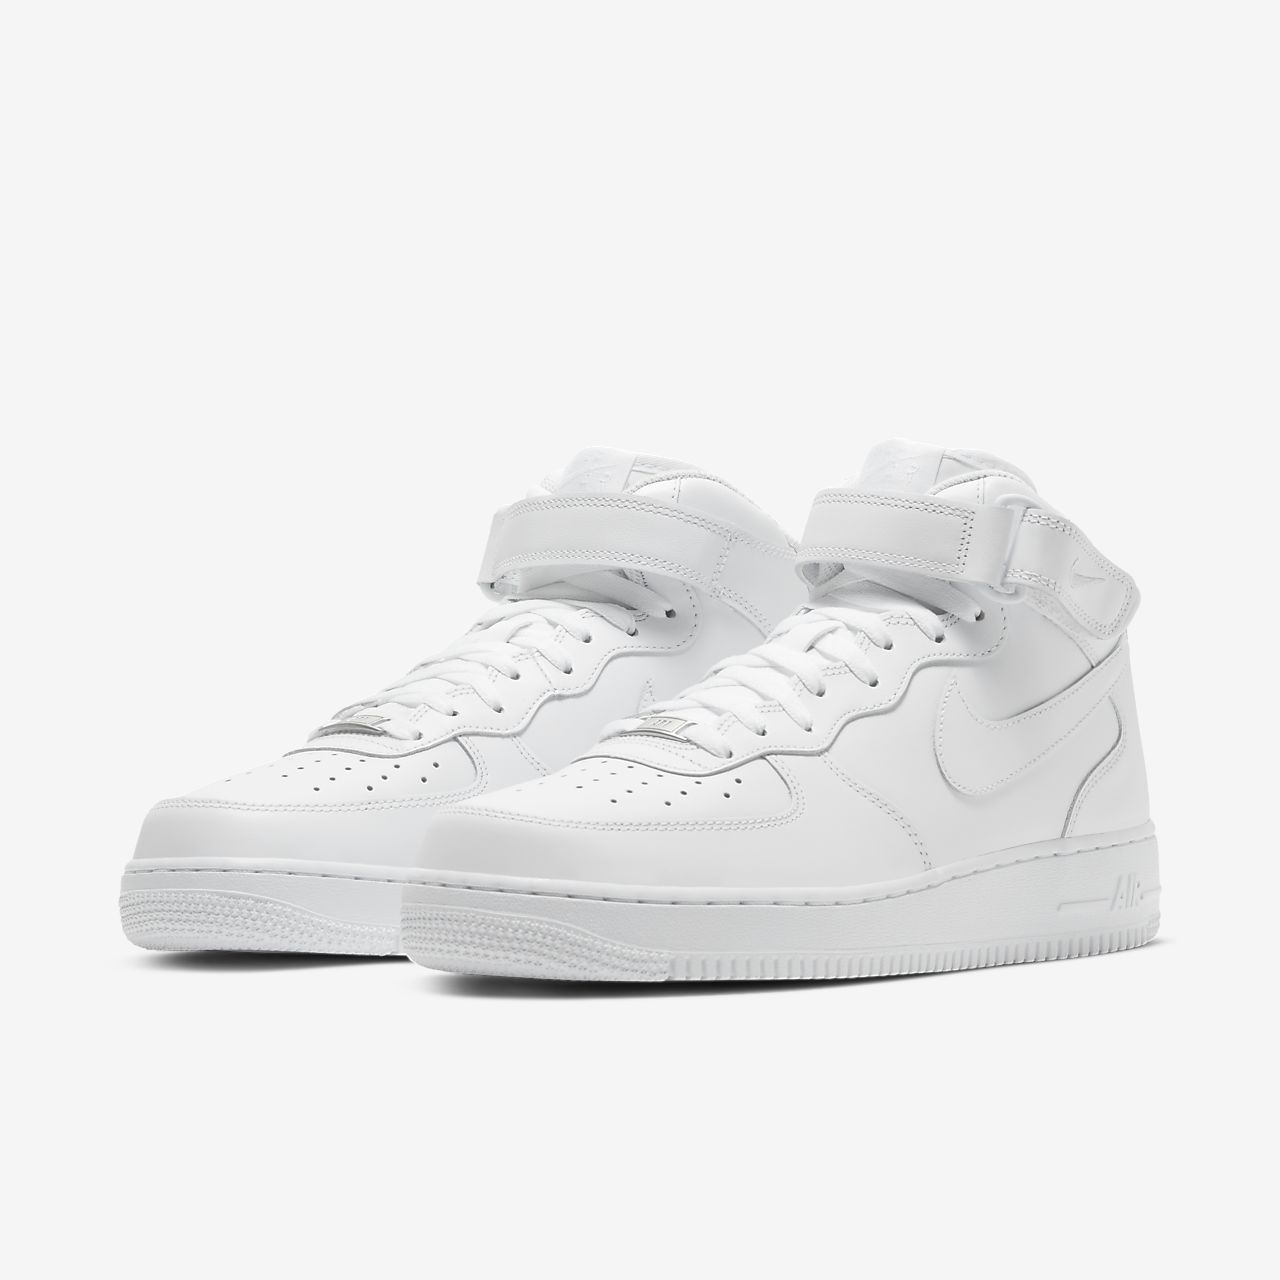 ... Nike Air Force 1 Mid '07 Men's Shoe